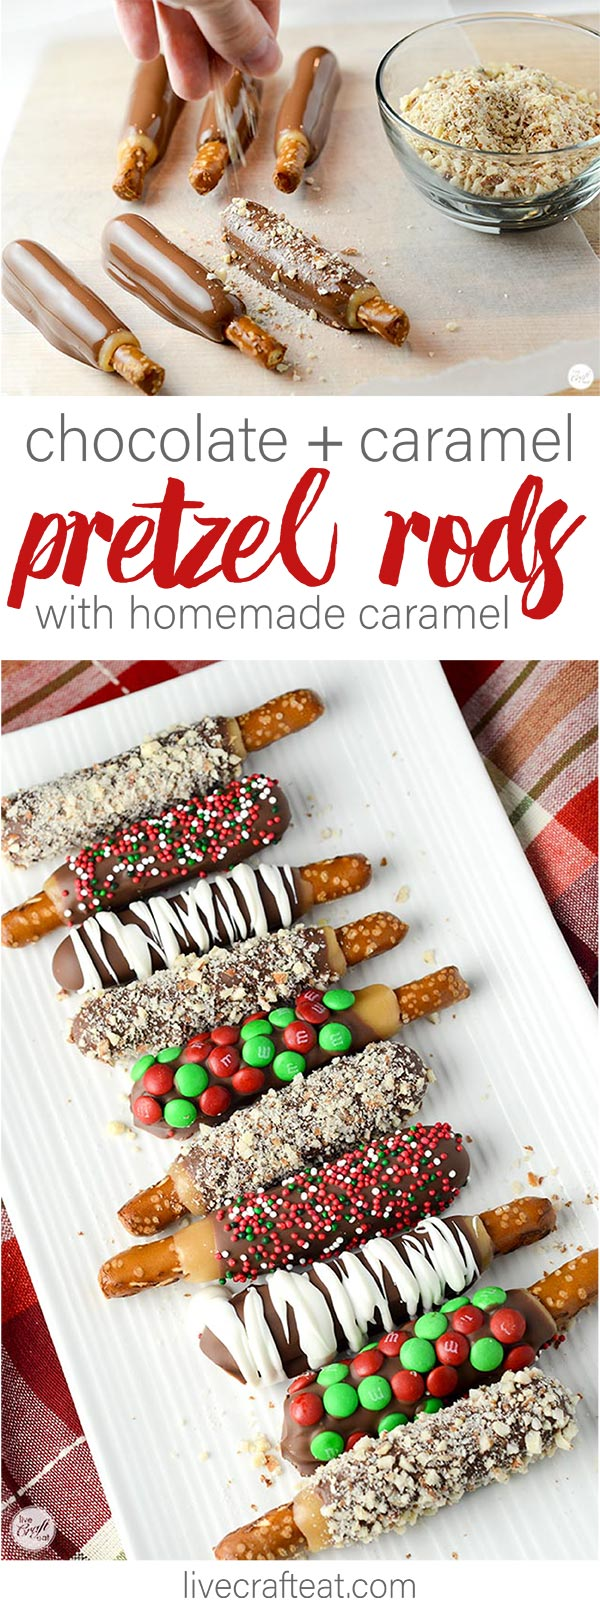 chocolate + caramel pretzel rods made with easy homemade caramel! these are the BEST!!!